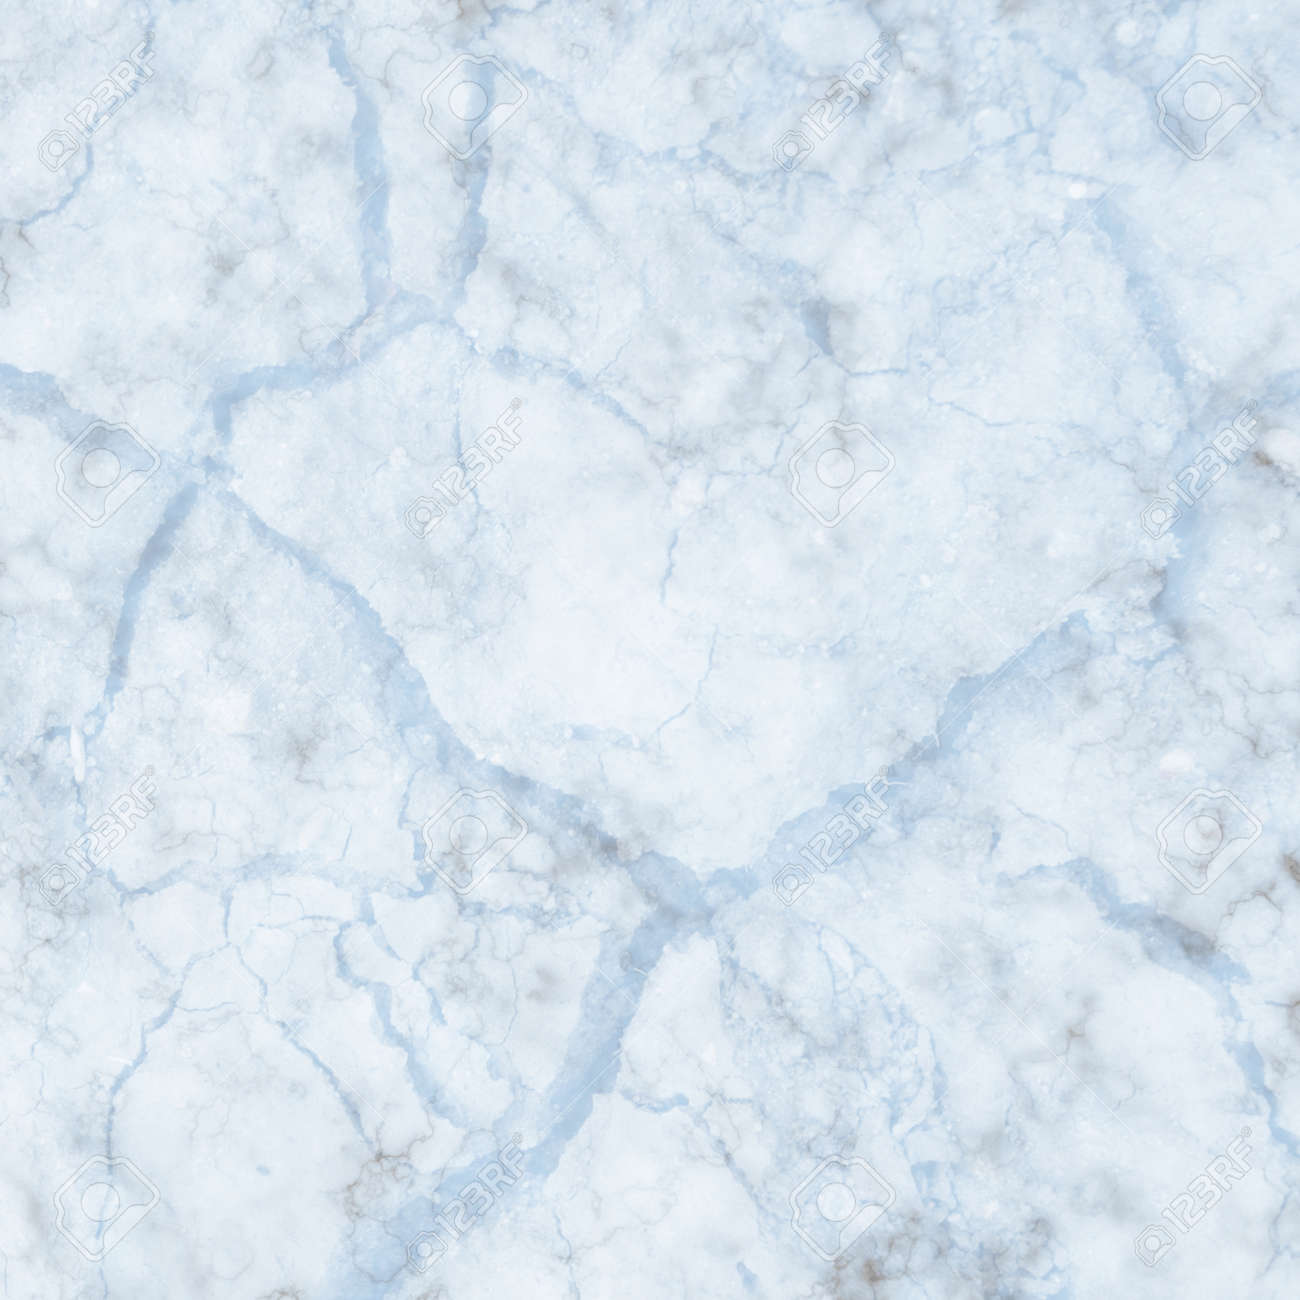 Marble Texture White Marble Background Blue Abstract Background Stock Photo Picture And Royalty Free Image Image 22878299